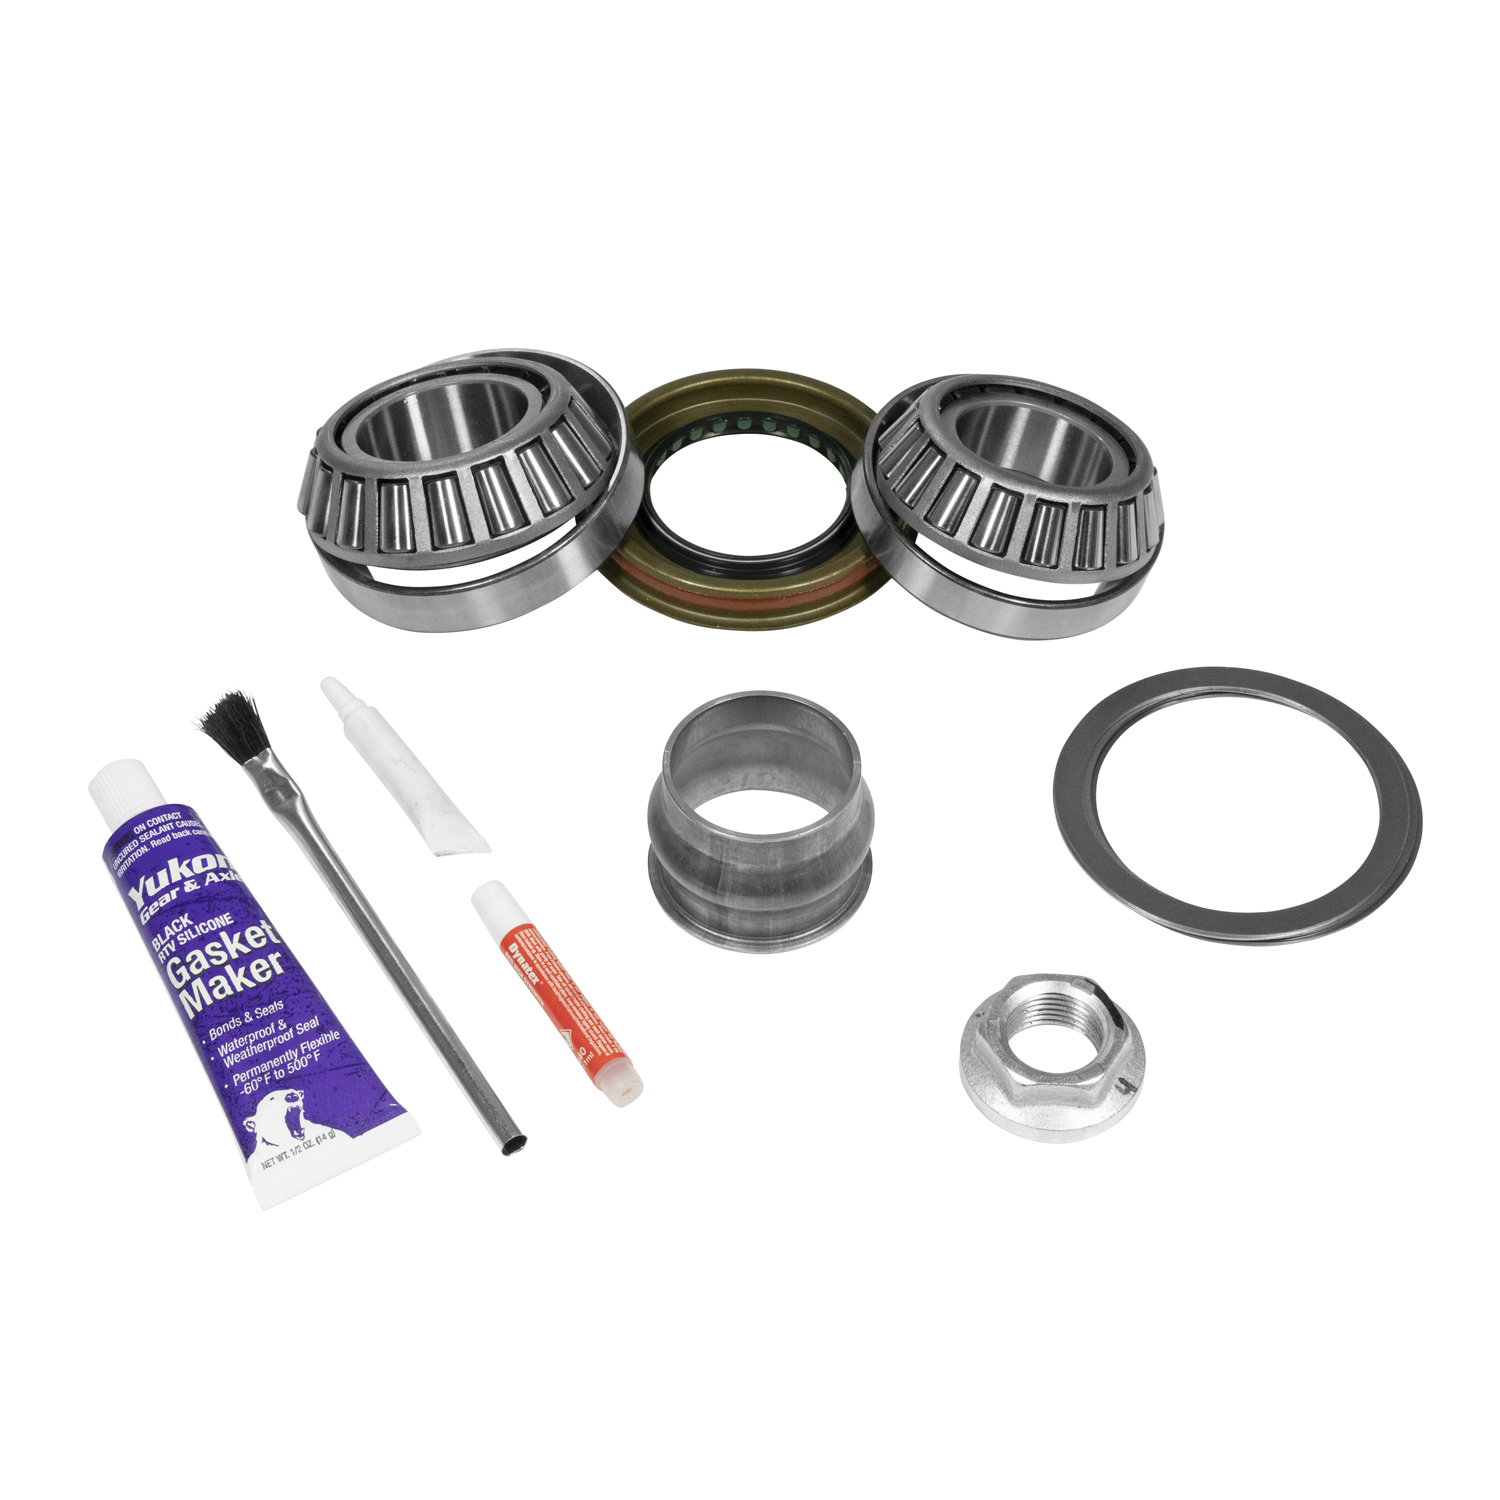 PK D44JL-FRONT - Yukon Front Pinion Installation Kit for Jeep Wrangler JL Dana 44, without Axle Seals